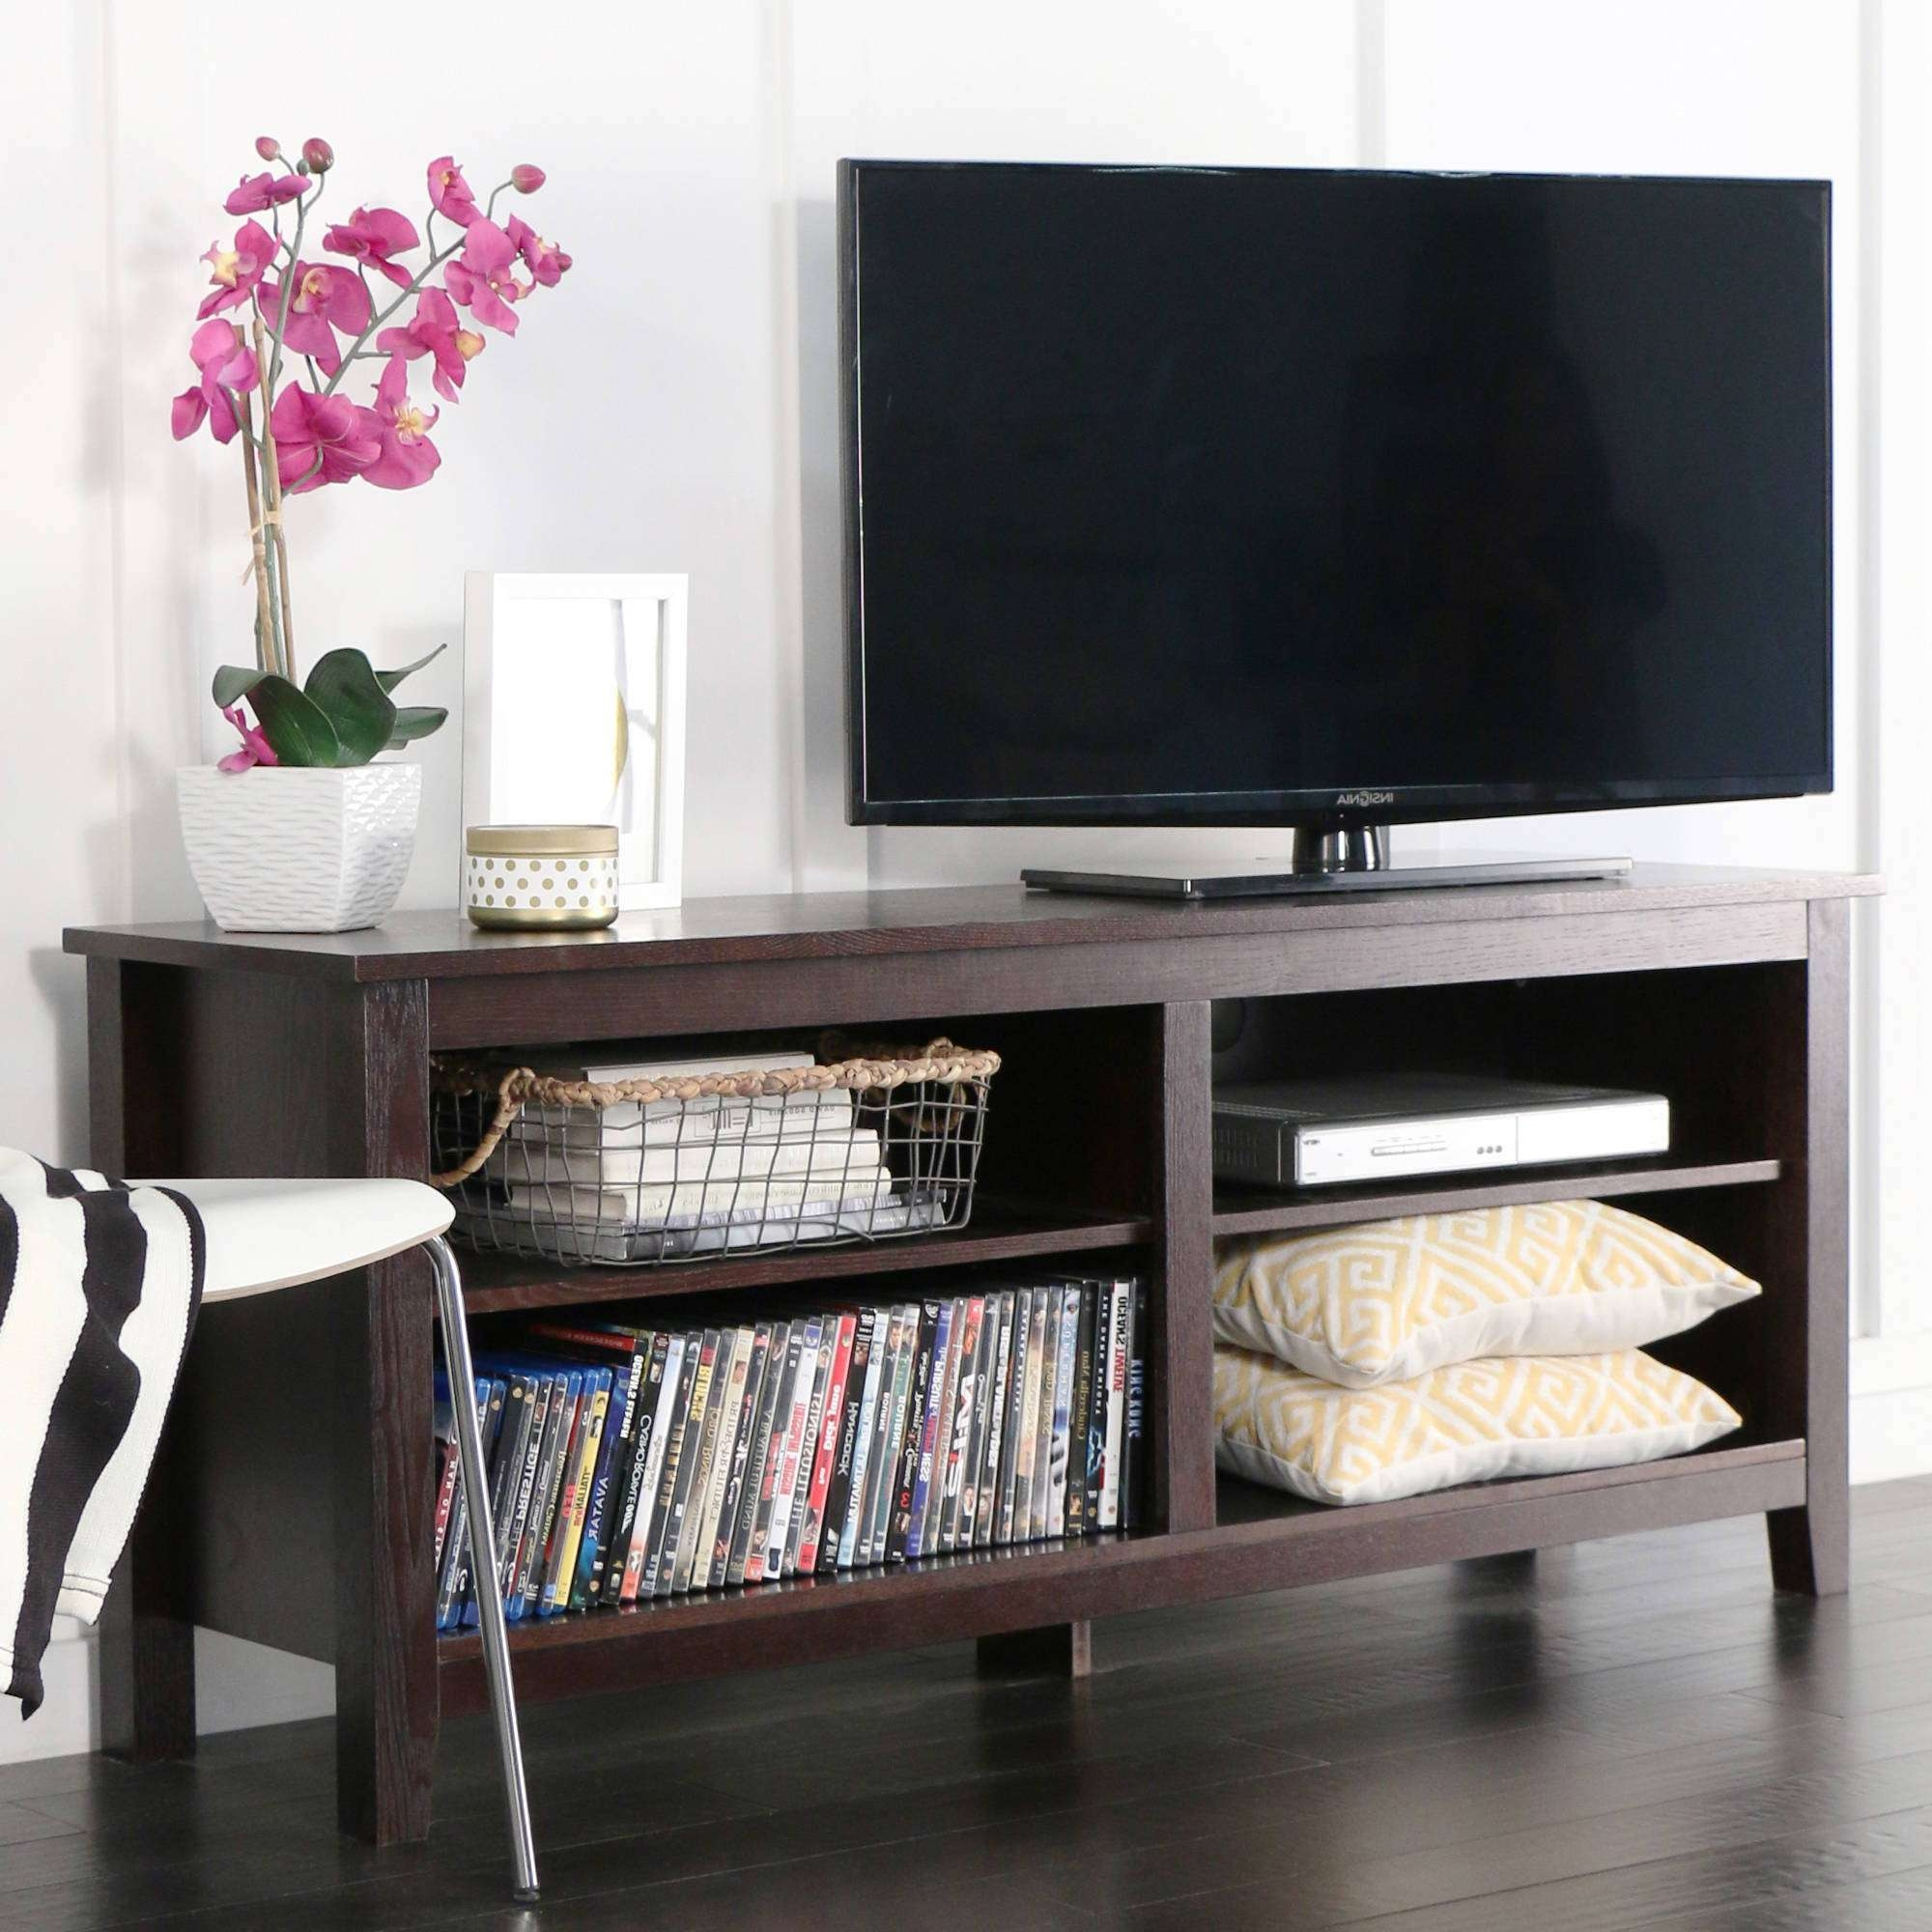 Tv Stand : 34 Stupendous Long Wooden Tv Stand Photo Inspirations Intended For Long Wood Tv Stands (View 12 of 15)